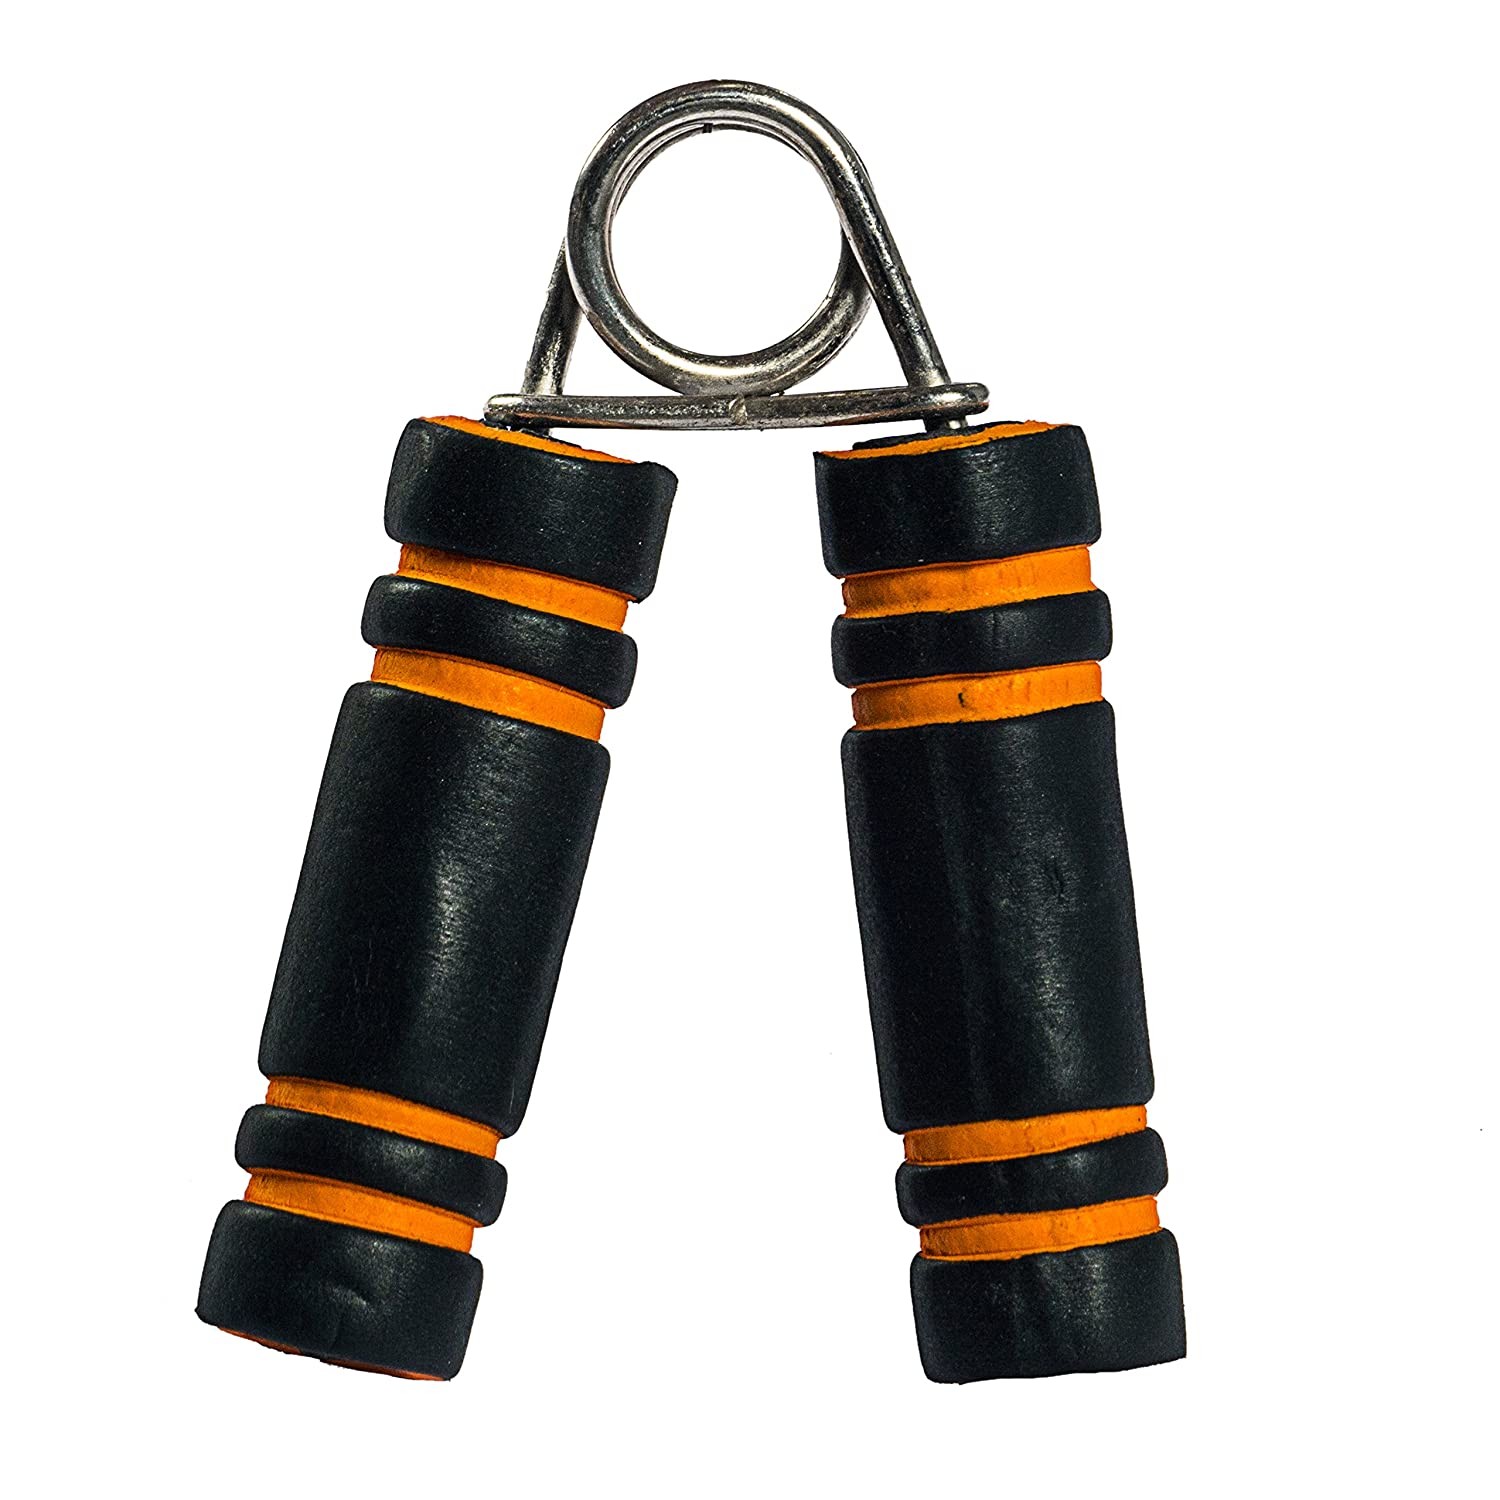 Wood Power Grip (Black and Orange)